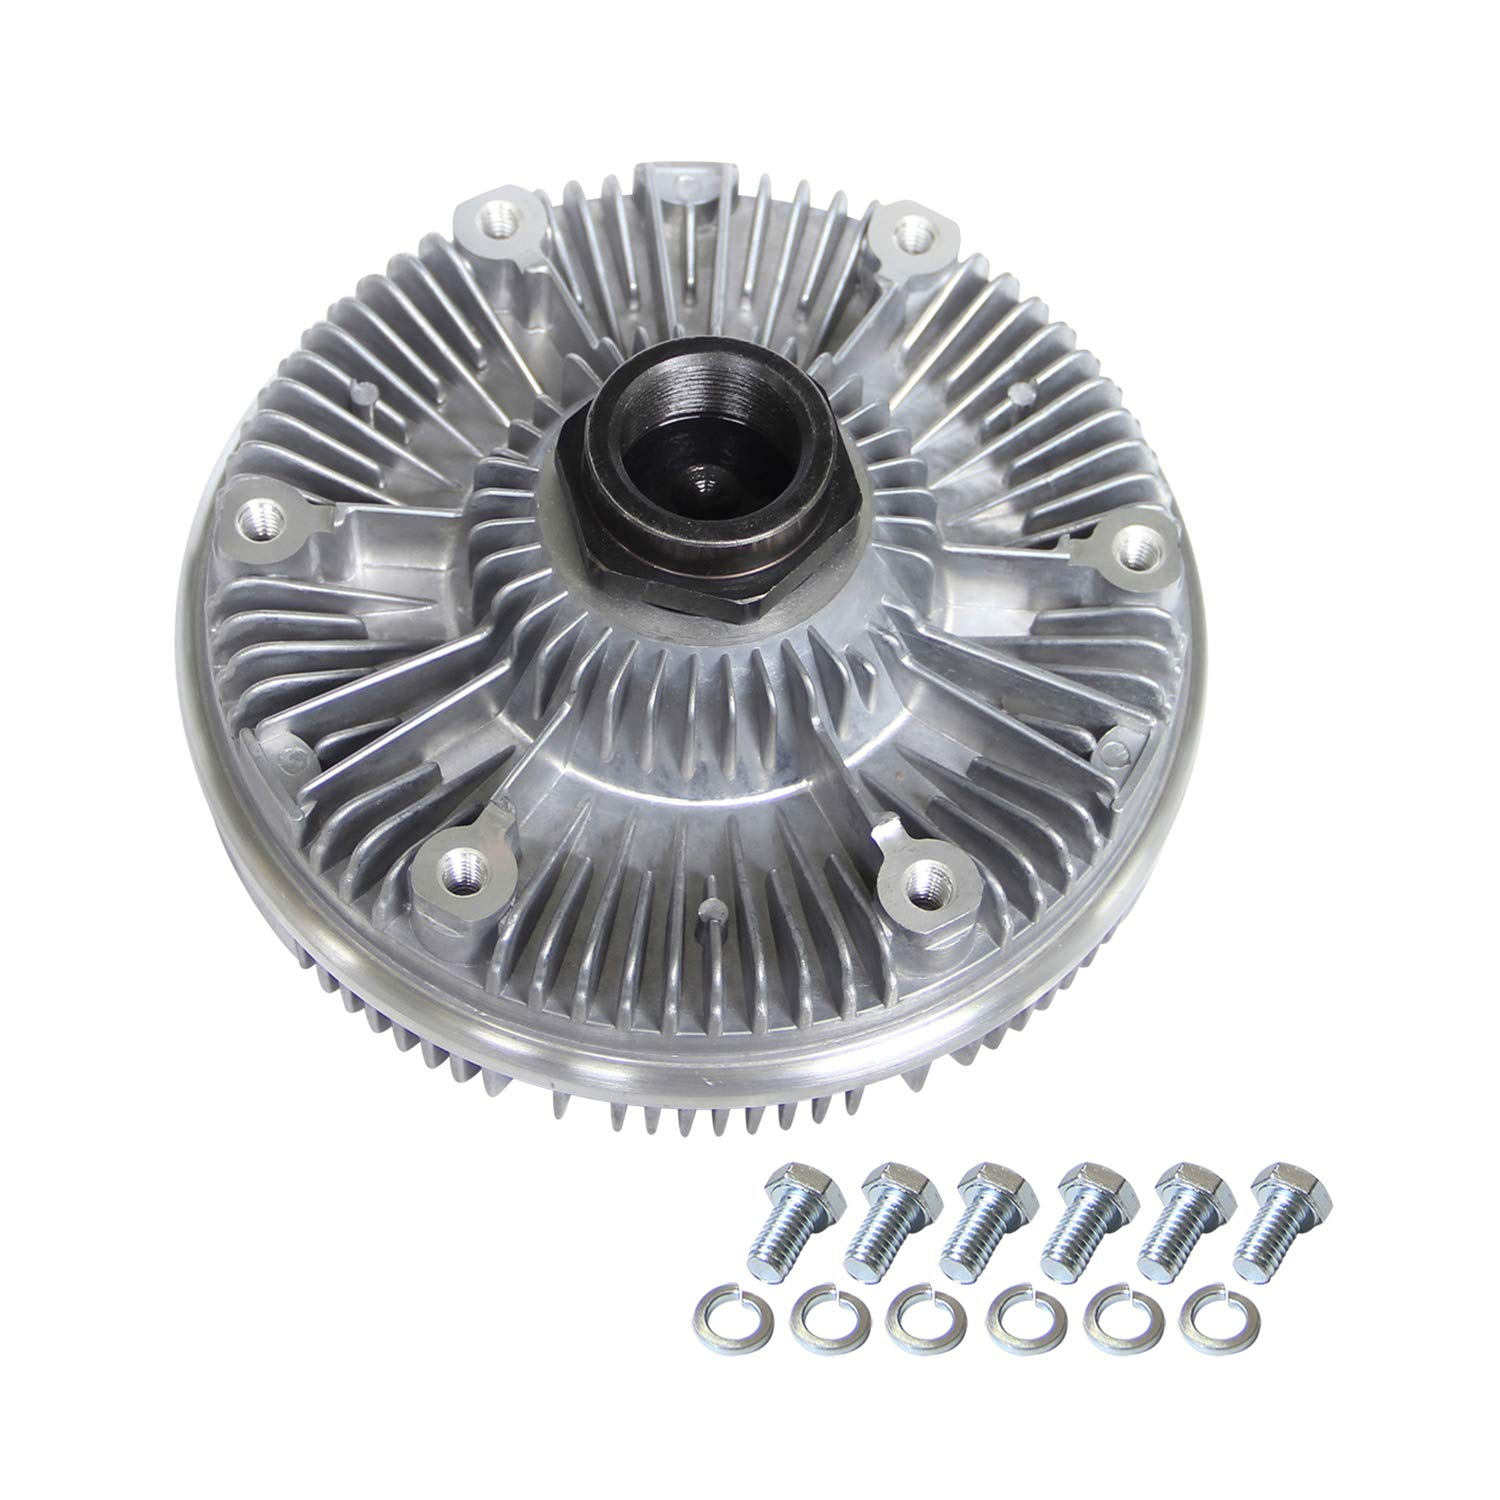 2835 Radiator Fan Clutch Engine Cooling Part for 1995-1997 Ford E-350 Econoline series F-250 F59 7.3L 2835